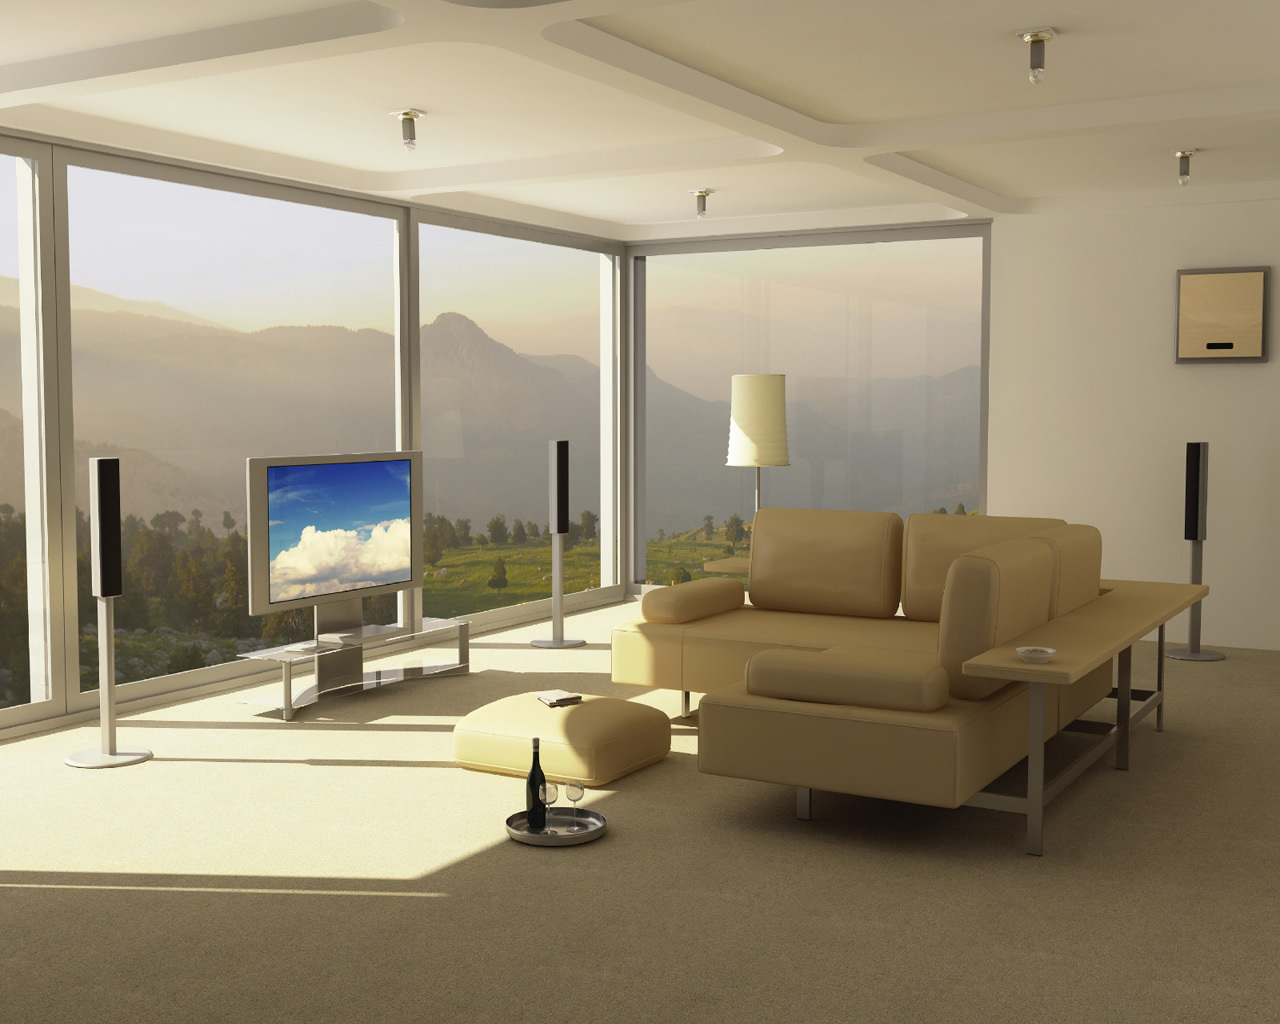 Hdb Executive Apartment Interior Design